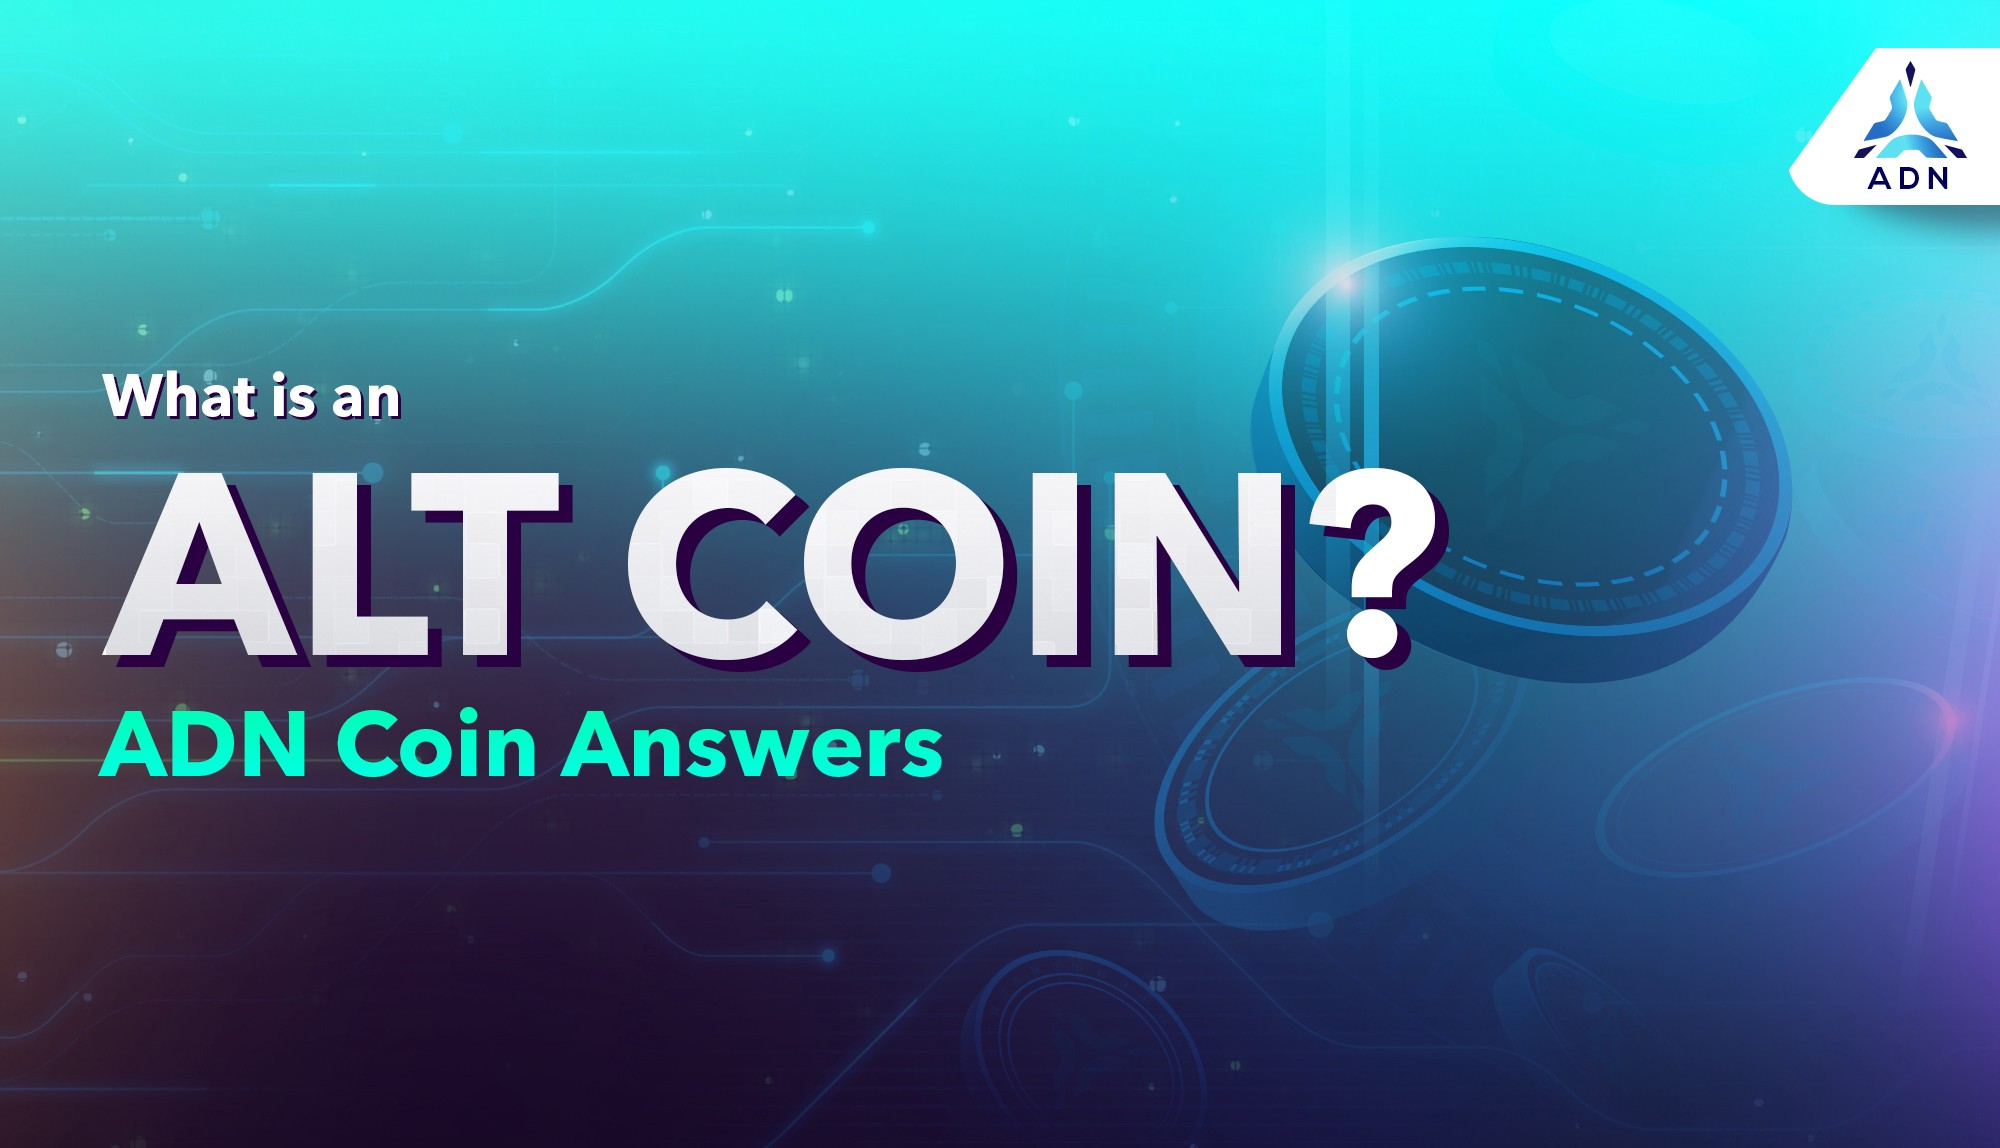 What is an Altcoin? ADN Explains